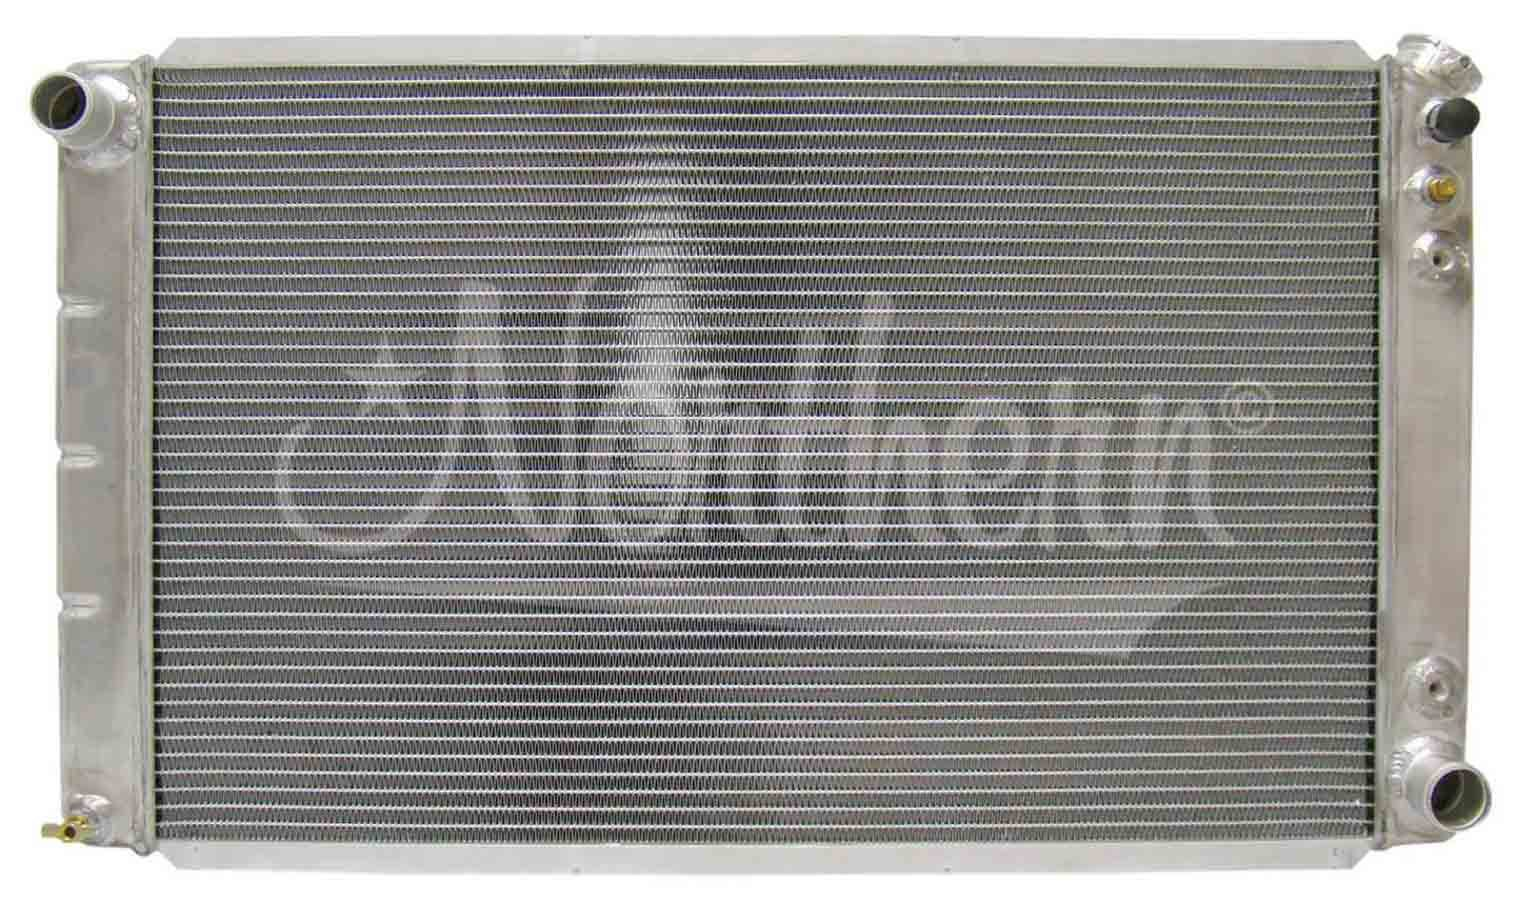 Northern Radiator 205065 Radiator, 33 in W x 18-1/8 in H x 3-1/8 in D, Passenger Side Inlet, Driver Side Outlet, Aluminum, Natural, Automatic, GM Fullsize Truck 1973-91, Each